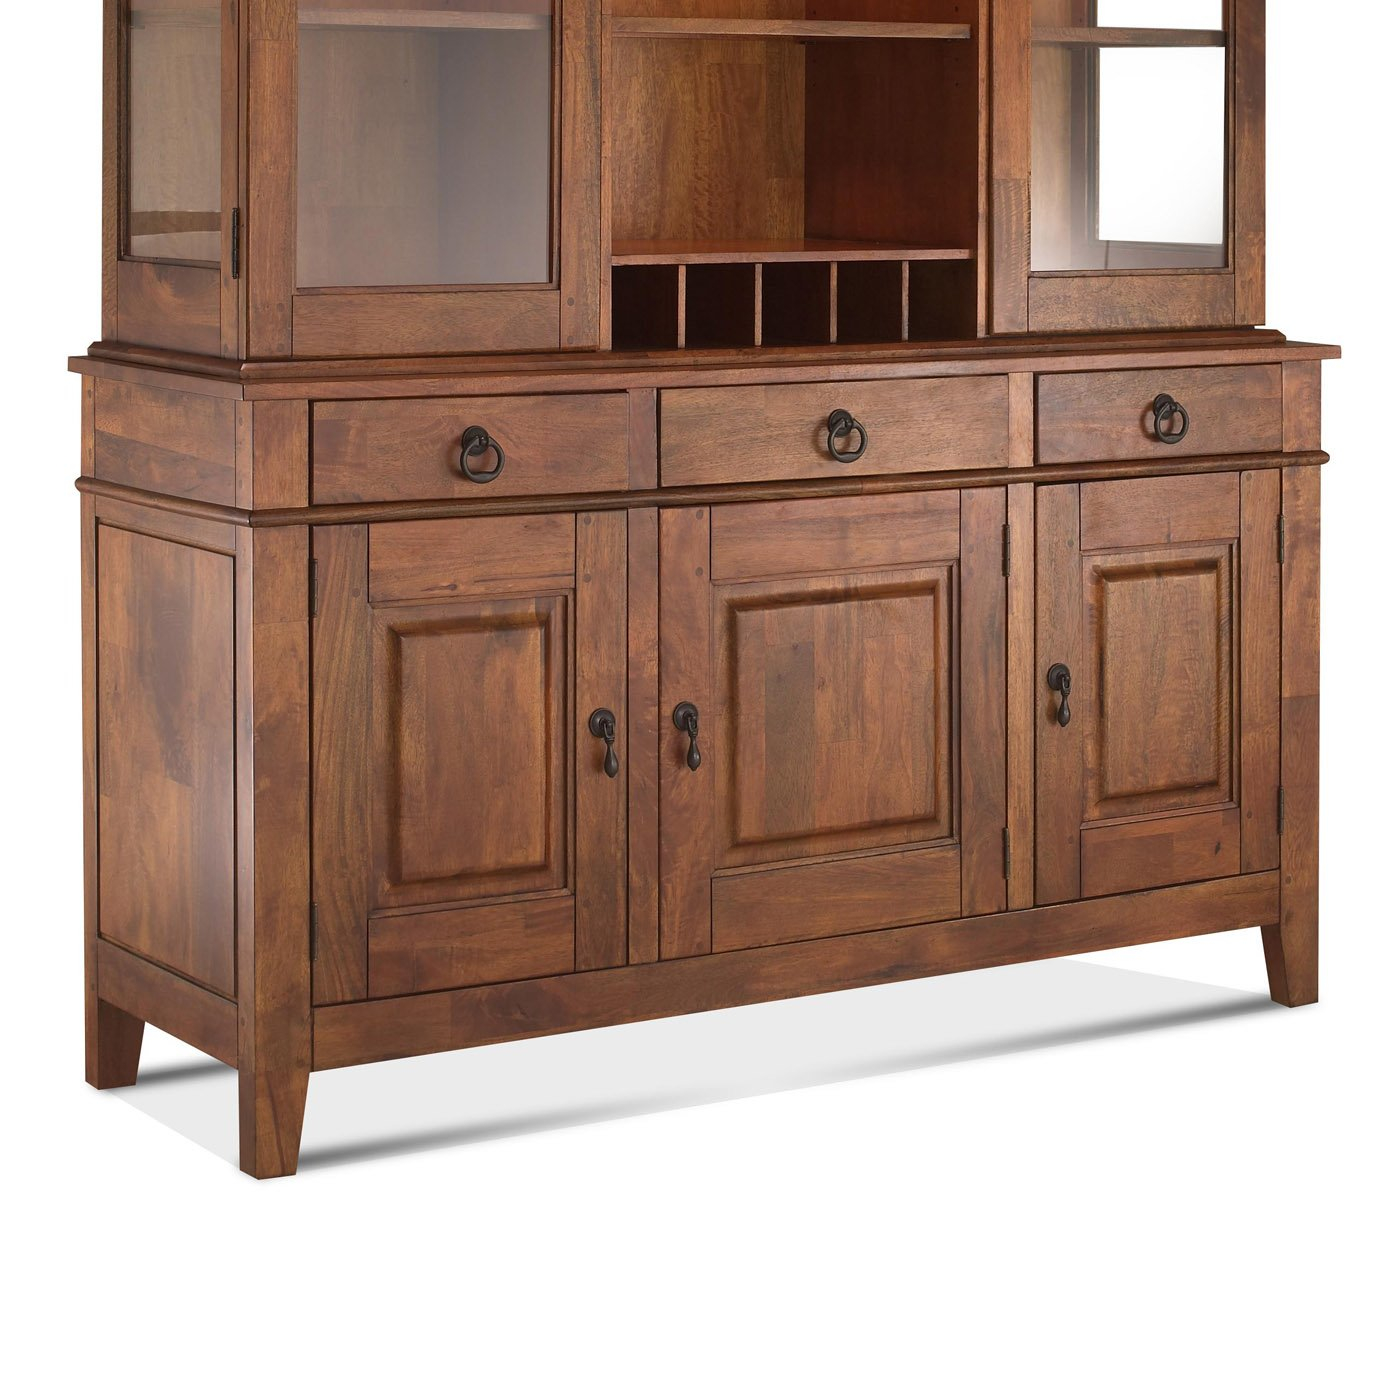 Small Sideboards and Buffets | Solid Wood Sideboards and Buffets | Buffets and Sideboards